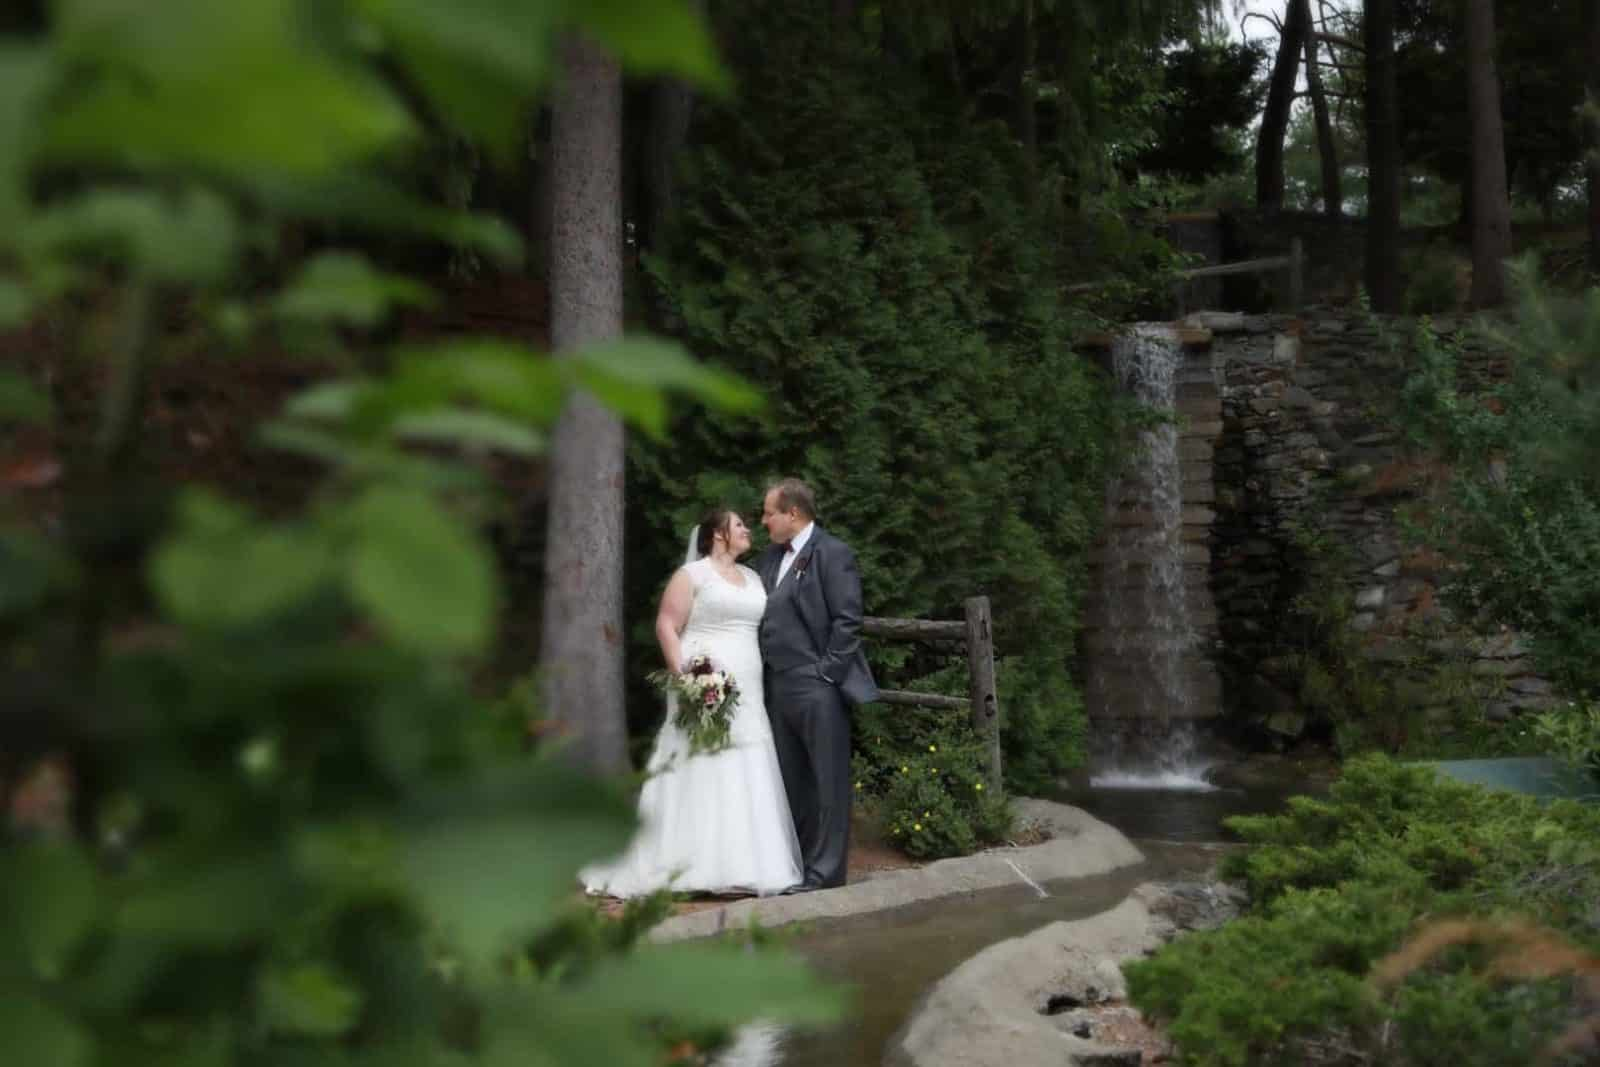 Bride and groom looking at one another near waterfall and stone walk way